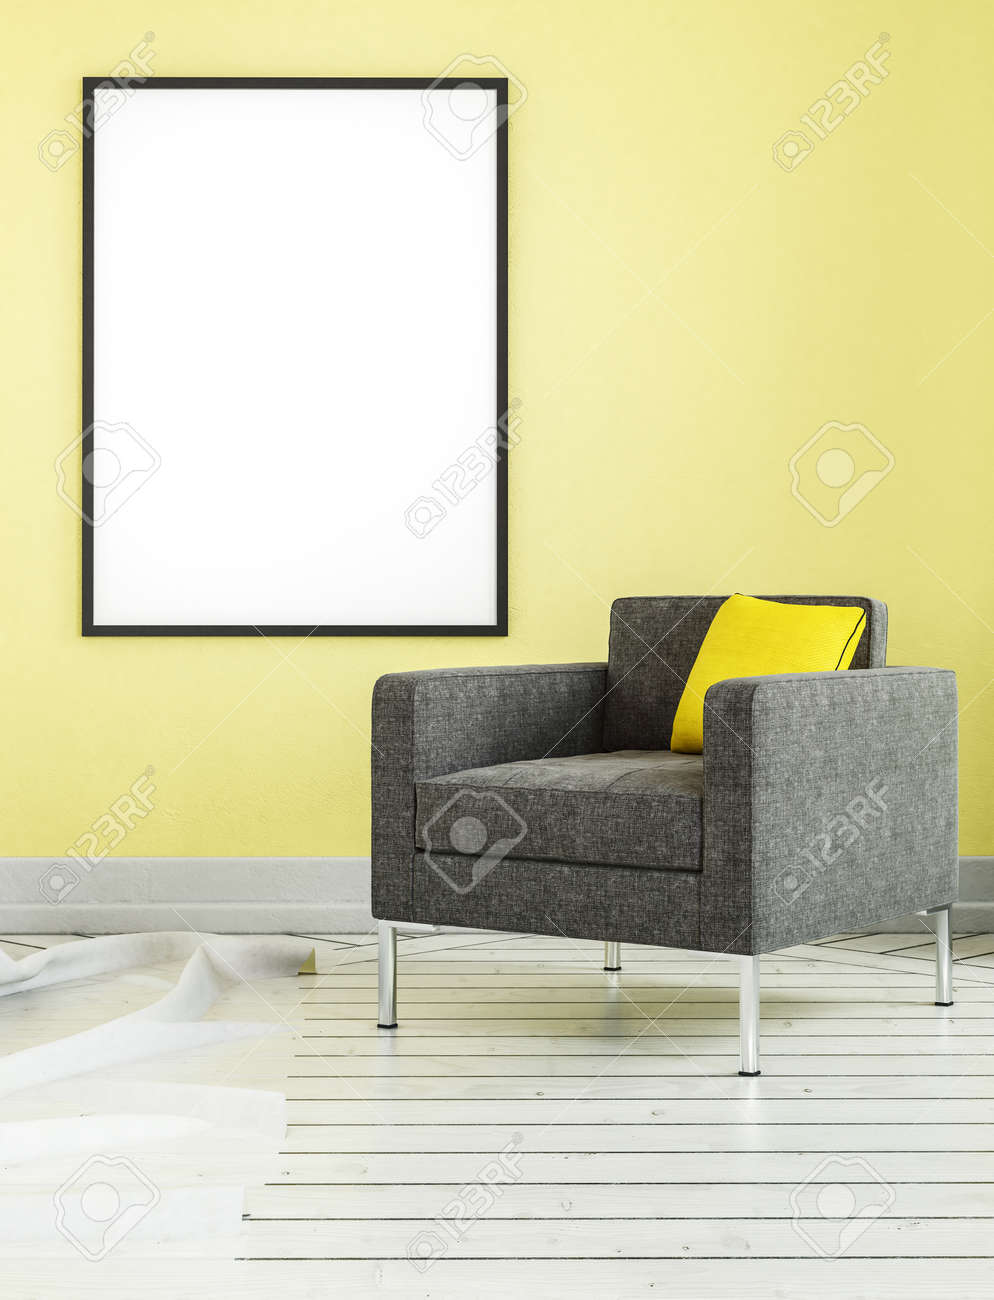 Yellow Living Room Chair Square Shaped Living Room Chair With Yellow Pillow And Empty